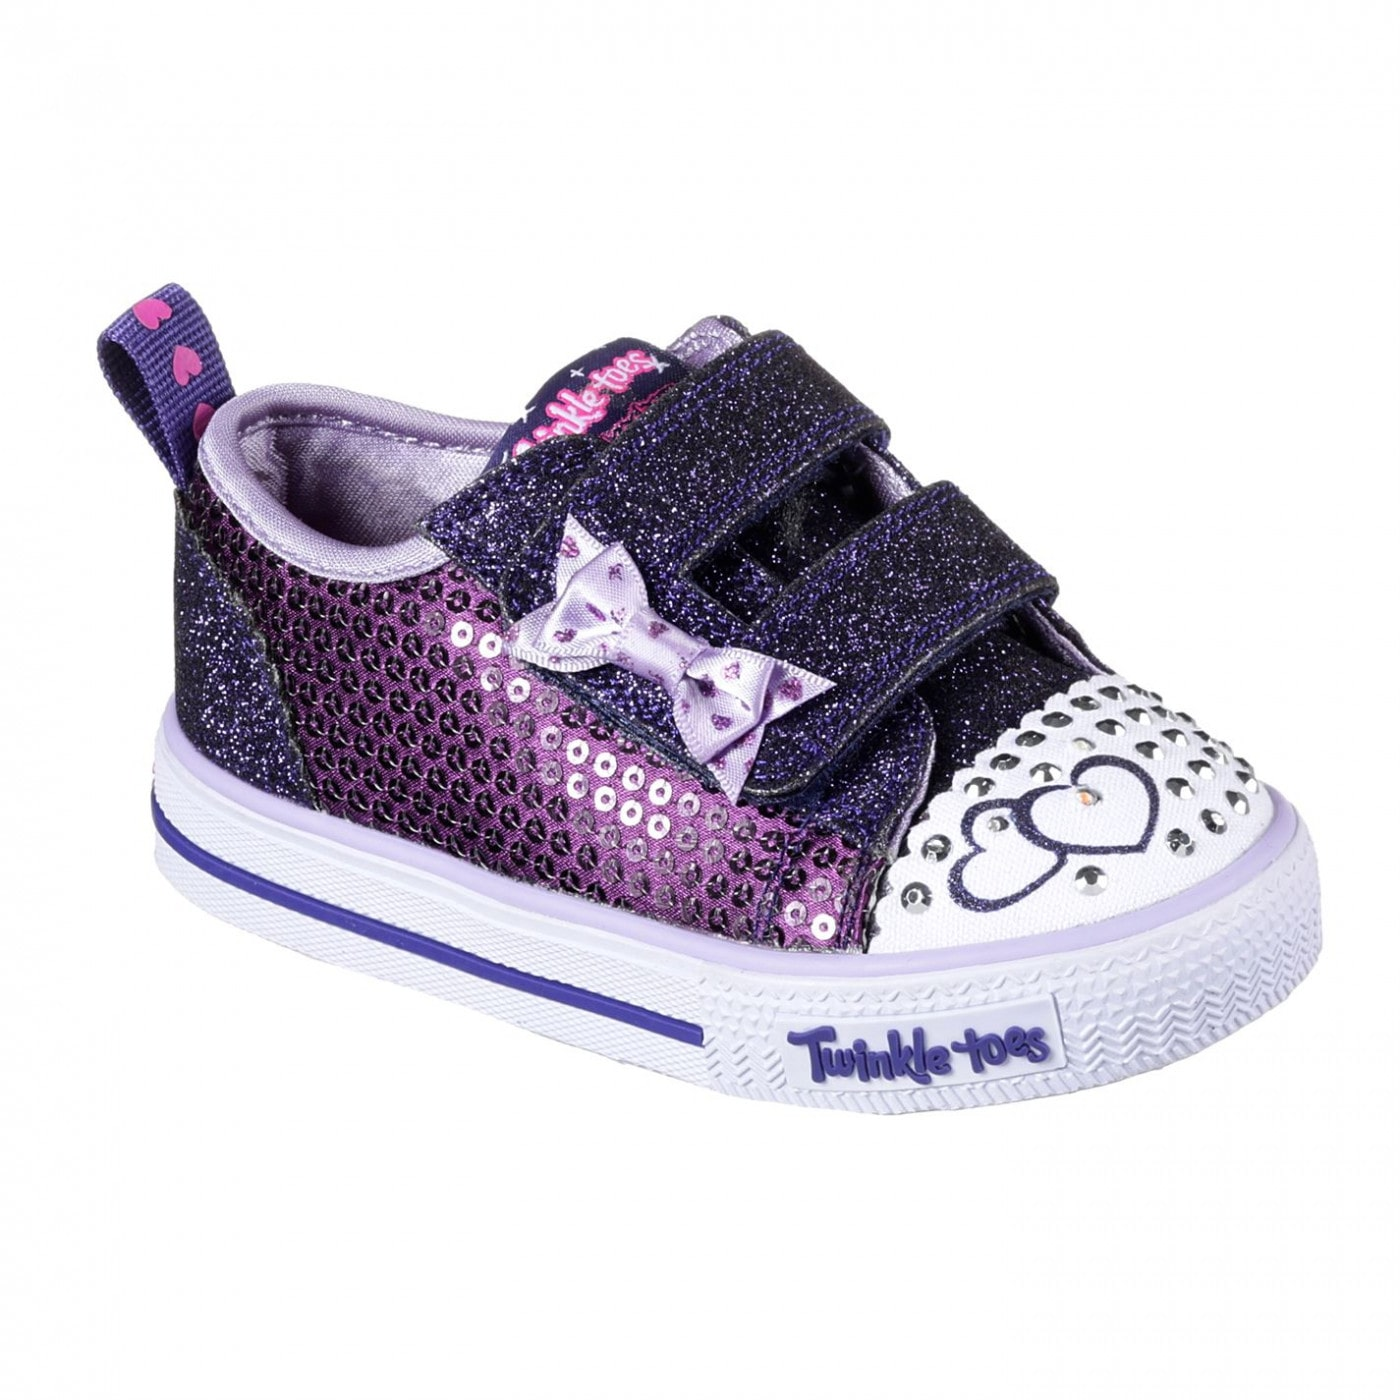 Skechers Twinkle Toes Itsy Bitsy Shoes Infant Girls